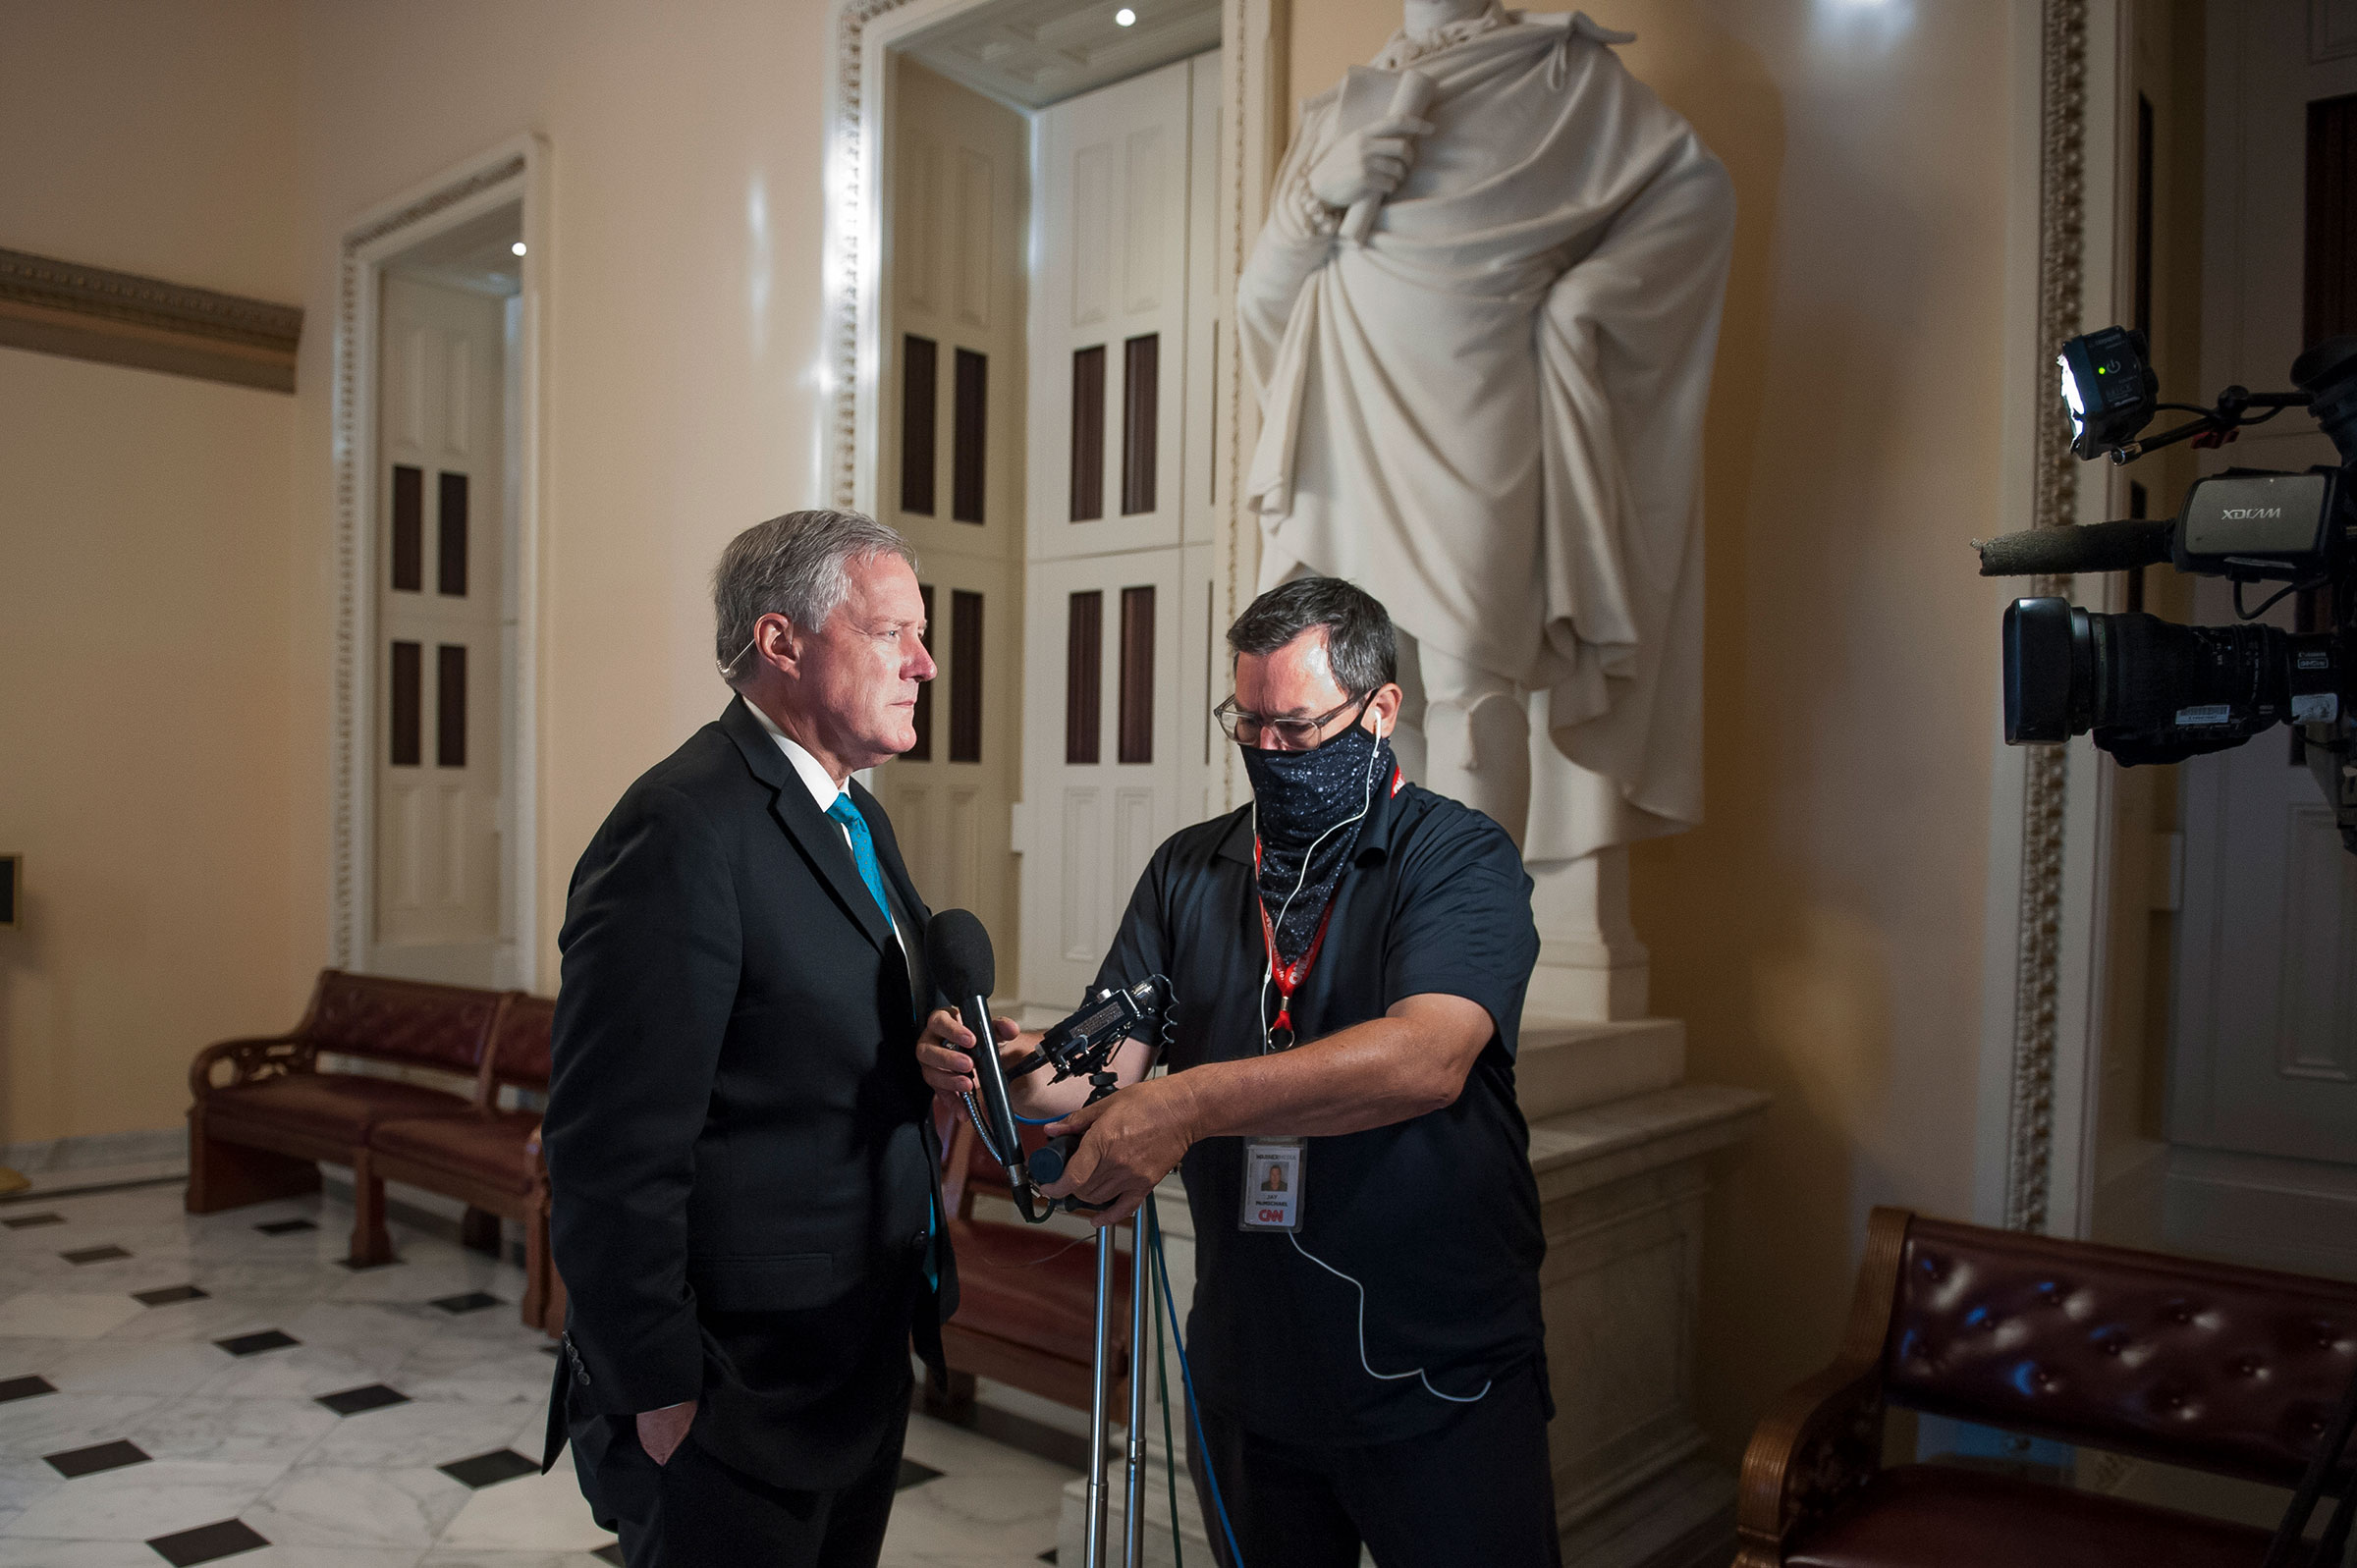 Assistant to the President and Chief of Staff Mark Meadows prepares to talk with reporters following a meeting with Speaker of the House Speaker Nancy Pelosi, Senate Minority Leader Chuck Schumer and Secretary of the Treasury Steven Mnuchin at the Capitol in Washington on Aug. 5, 2020.